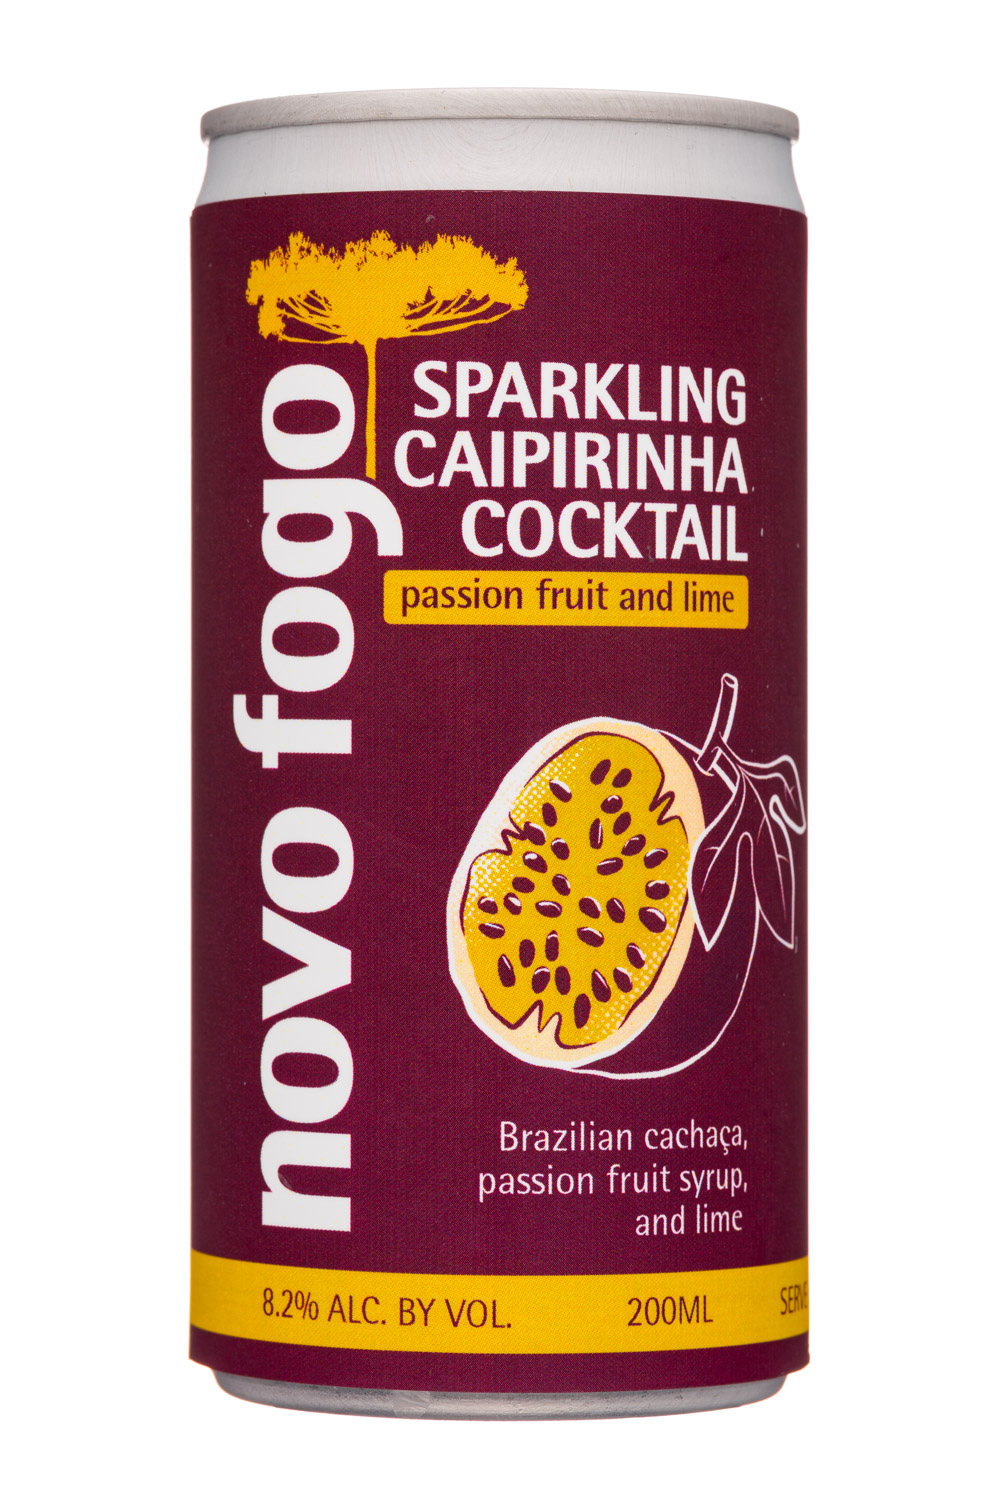 Sparkling Caipirinha Cocktail - Passion Fruit and Lime